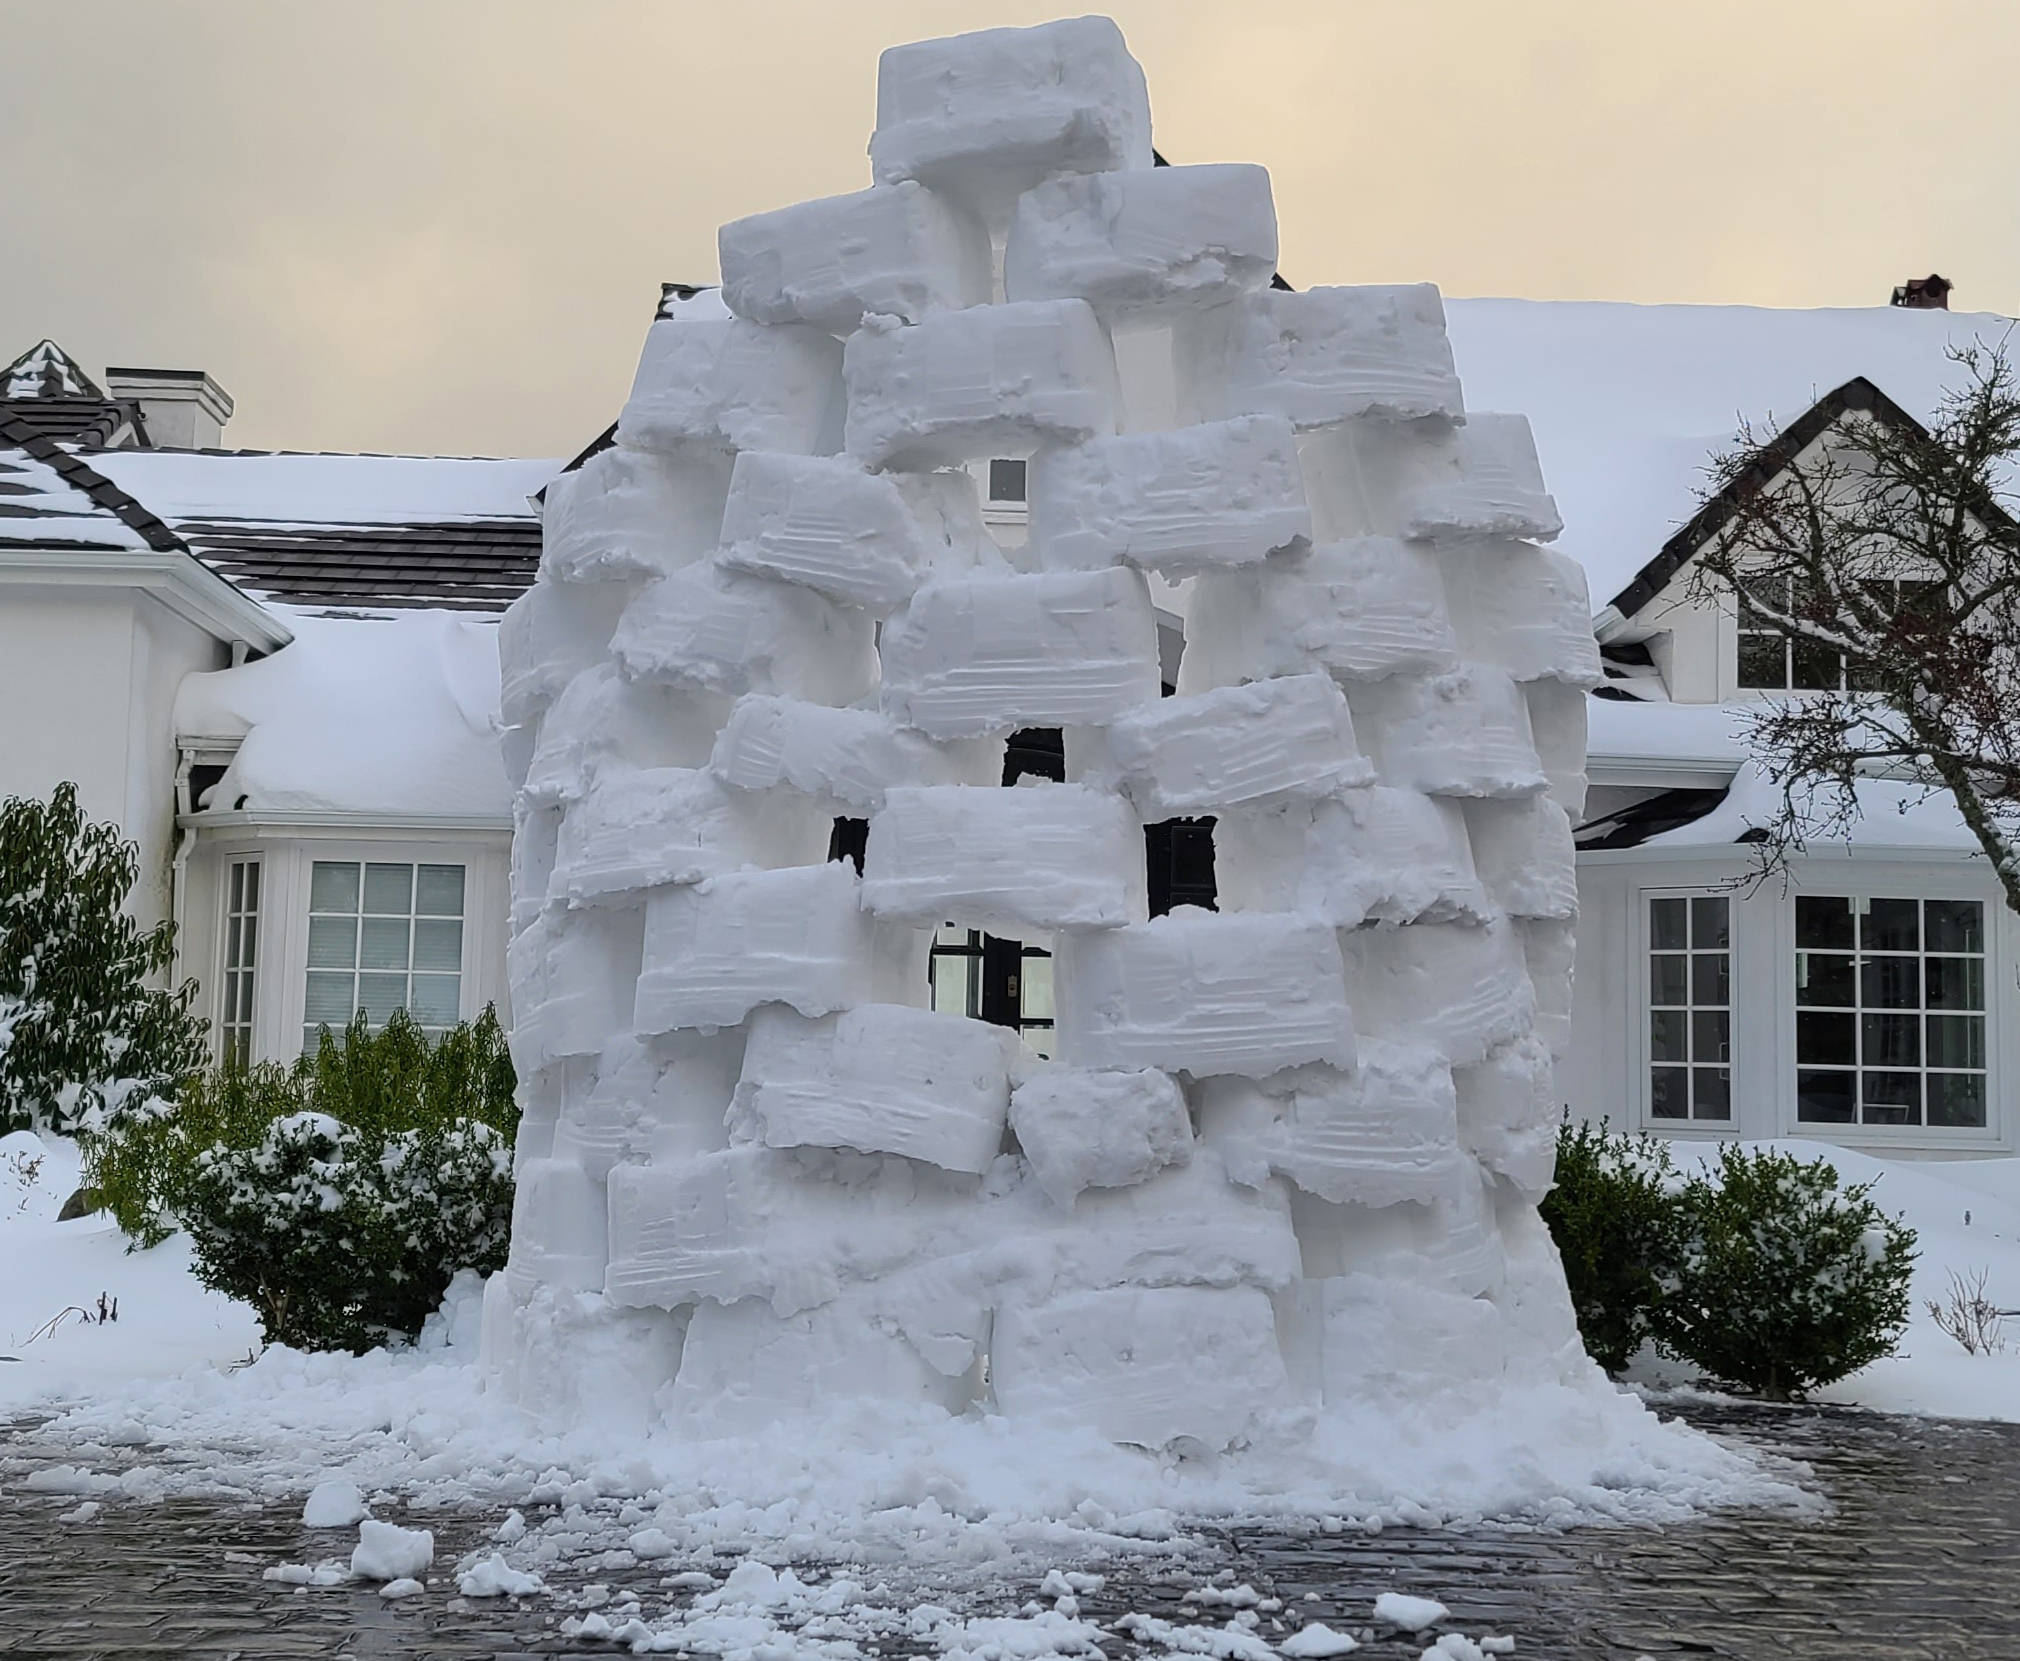 This snow wall appeared Saturday in front of a Saanich neighbourhood. No word who paid for it. (Courtesy of Myron P)